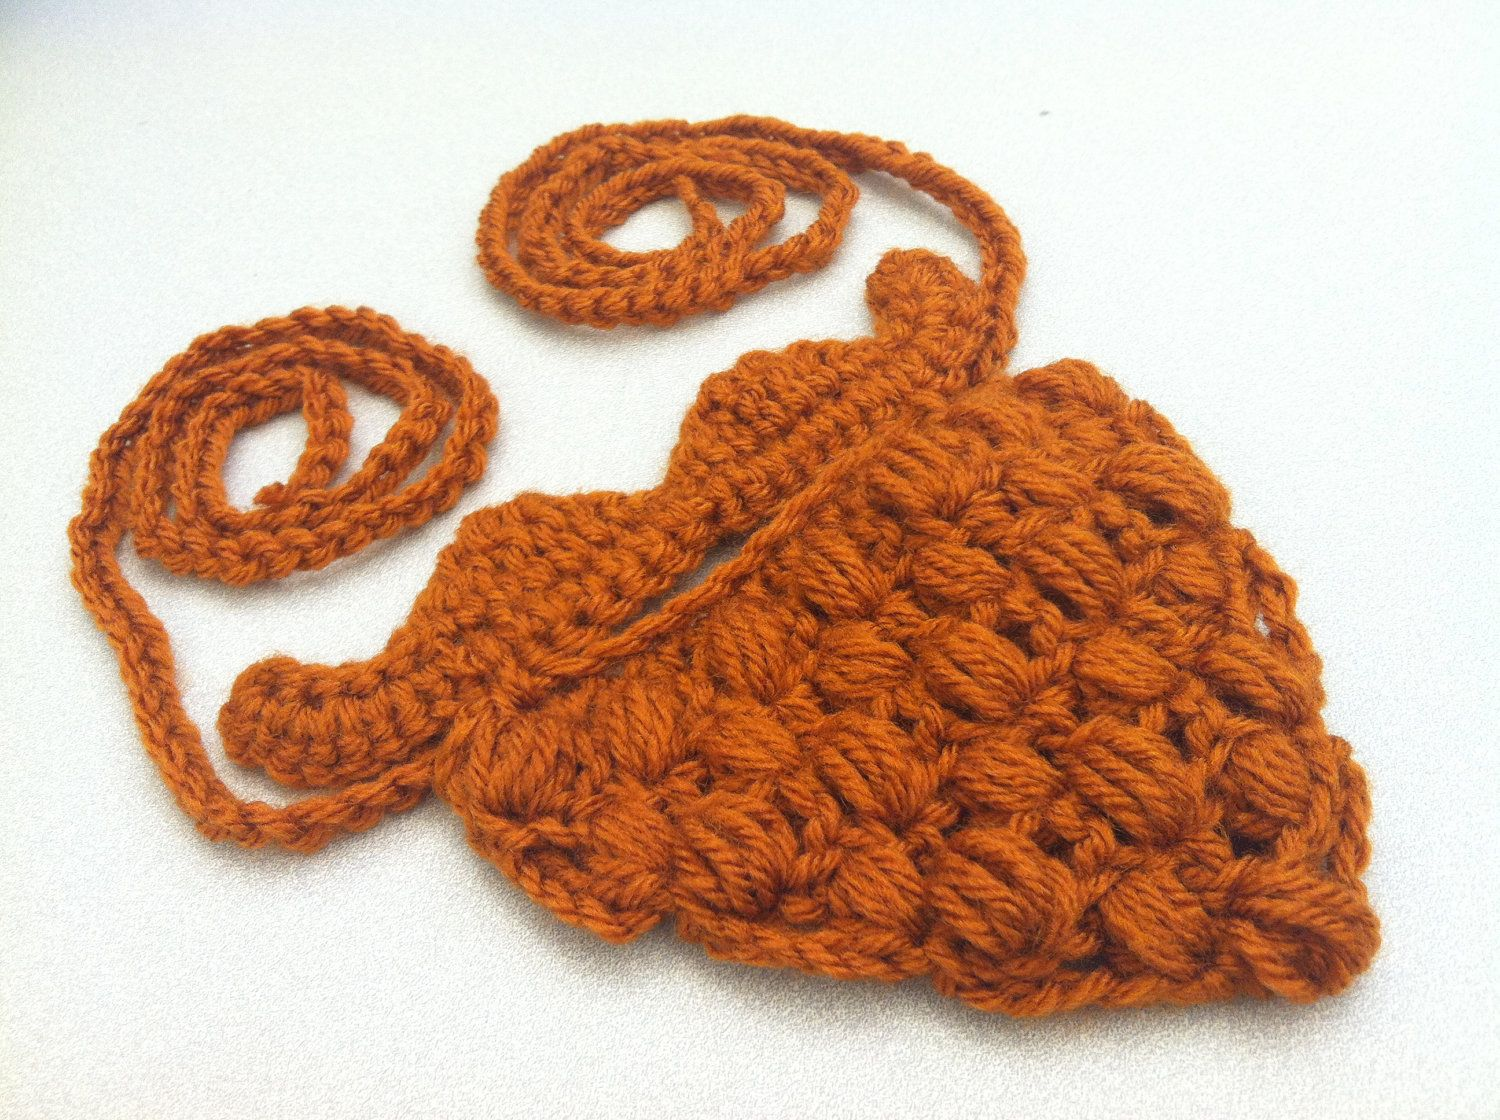 Crochet Beard Pattern | Crochet Mustache with Attached Beard by TheContraryCanary on Etsy #crochetedbeards